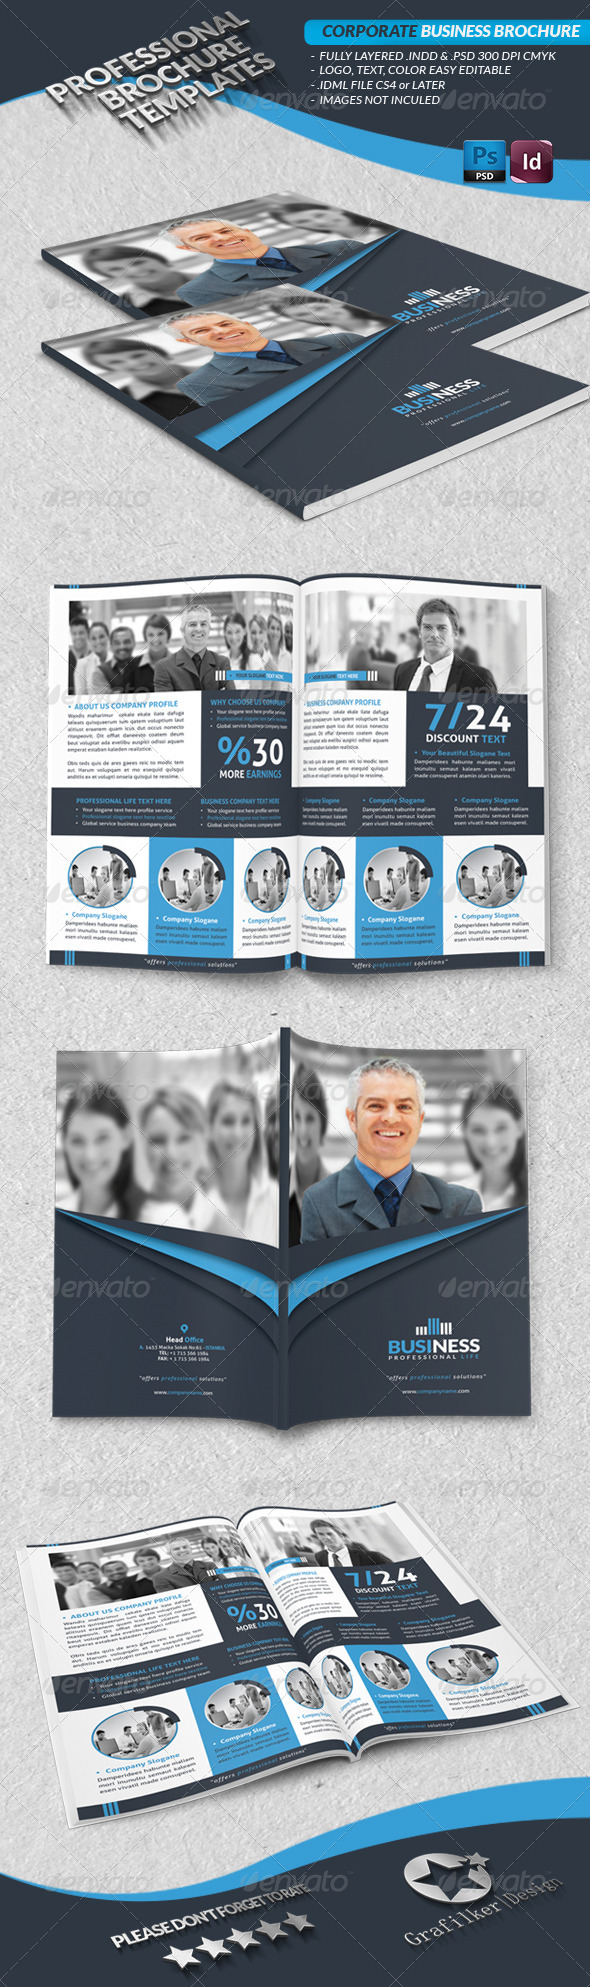 GraphicRiver Corporate Business Brochure 4103203